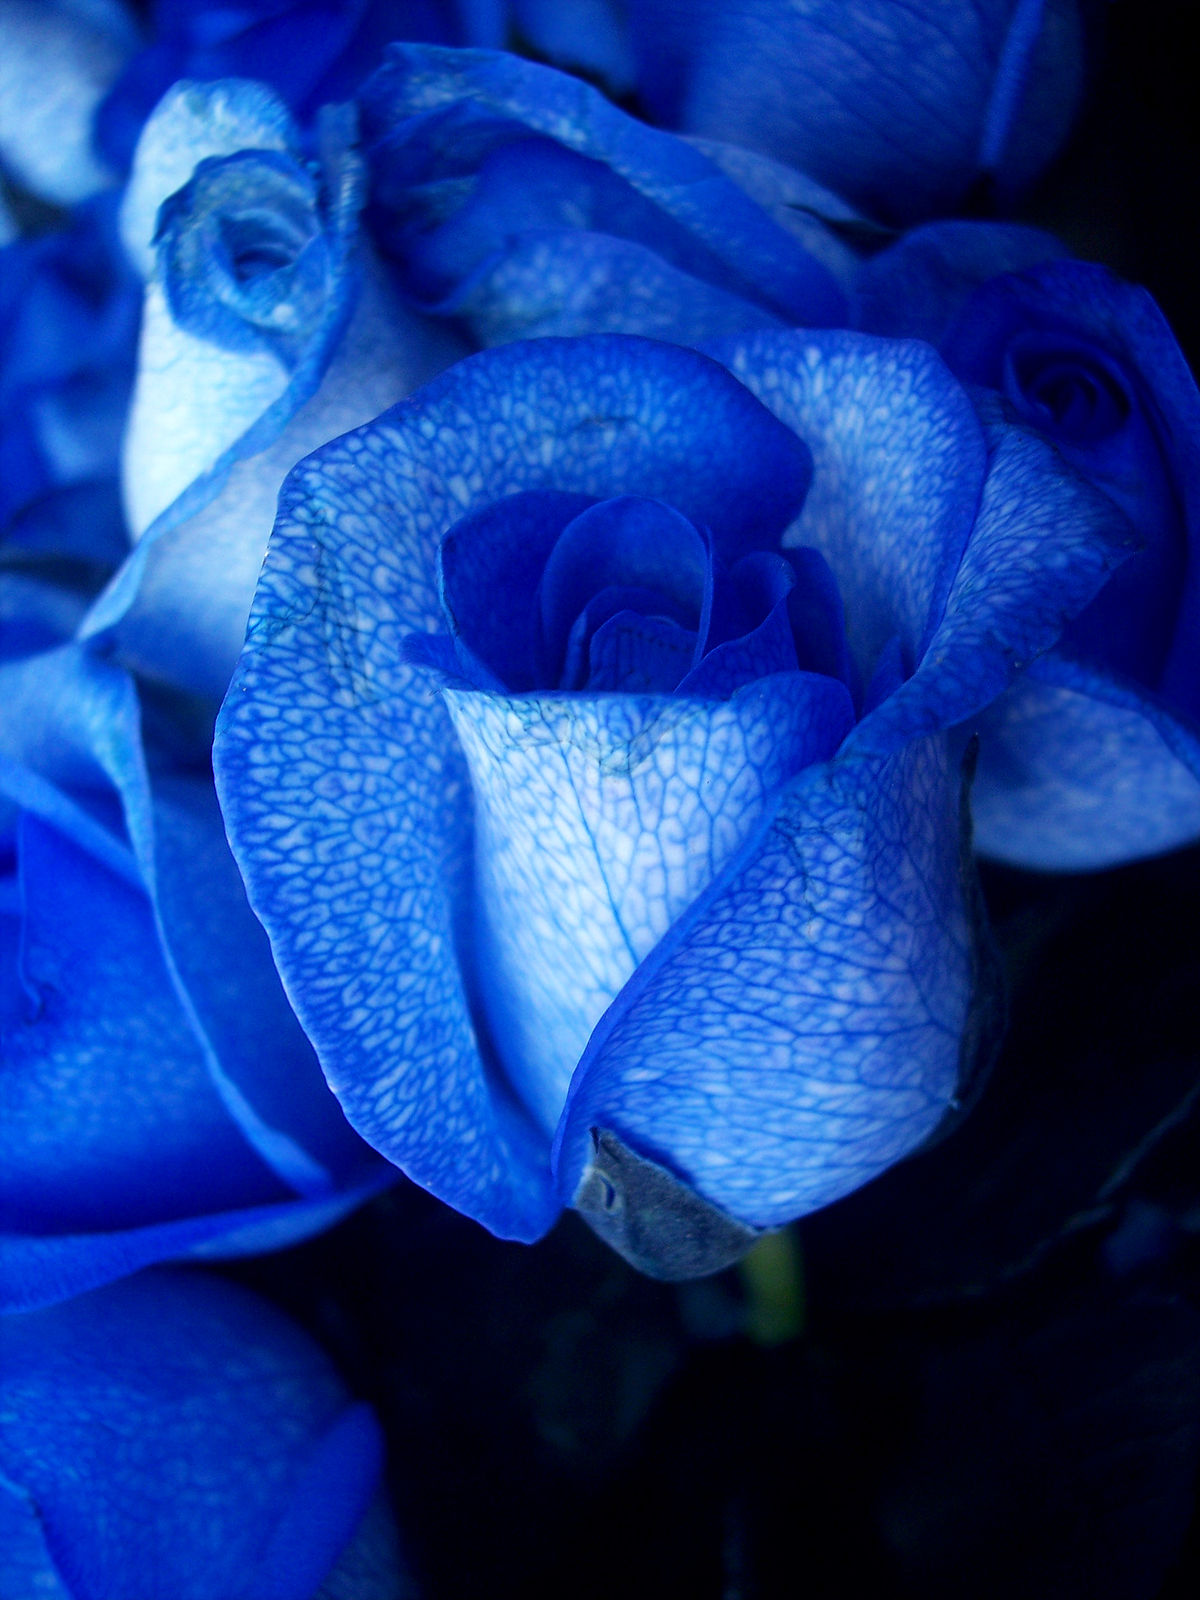 Blue Rose Wikipedia